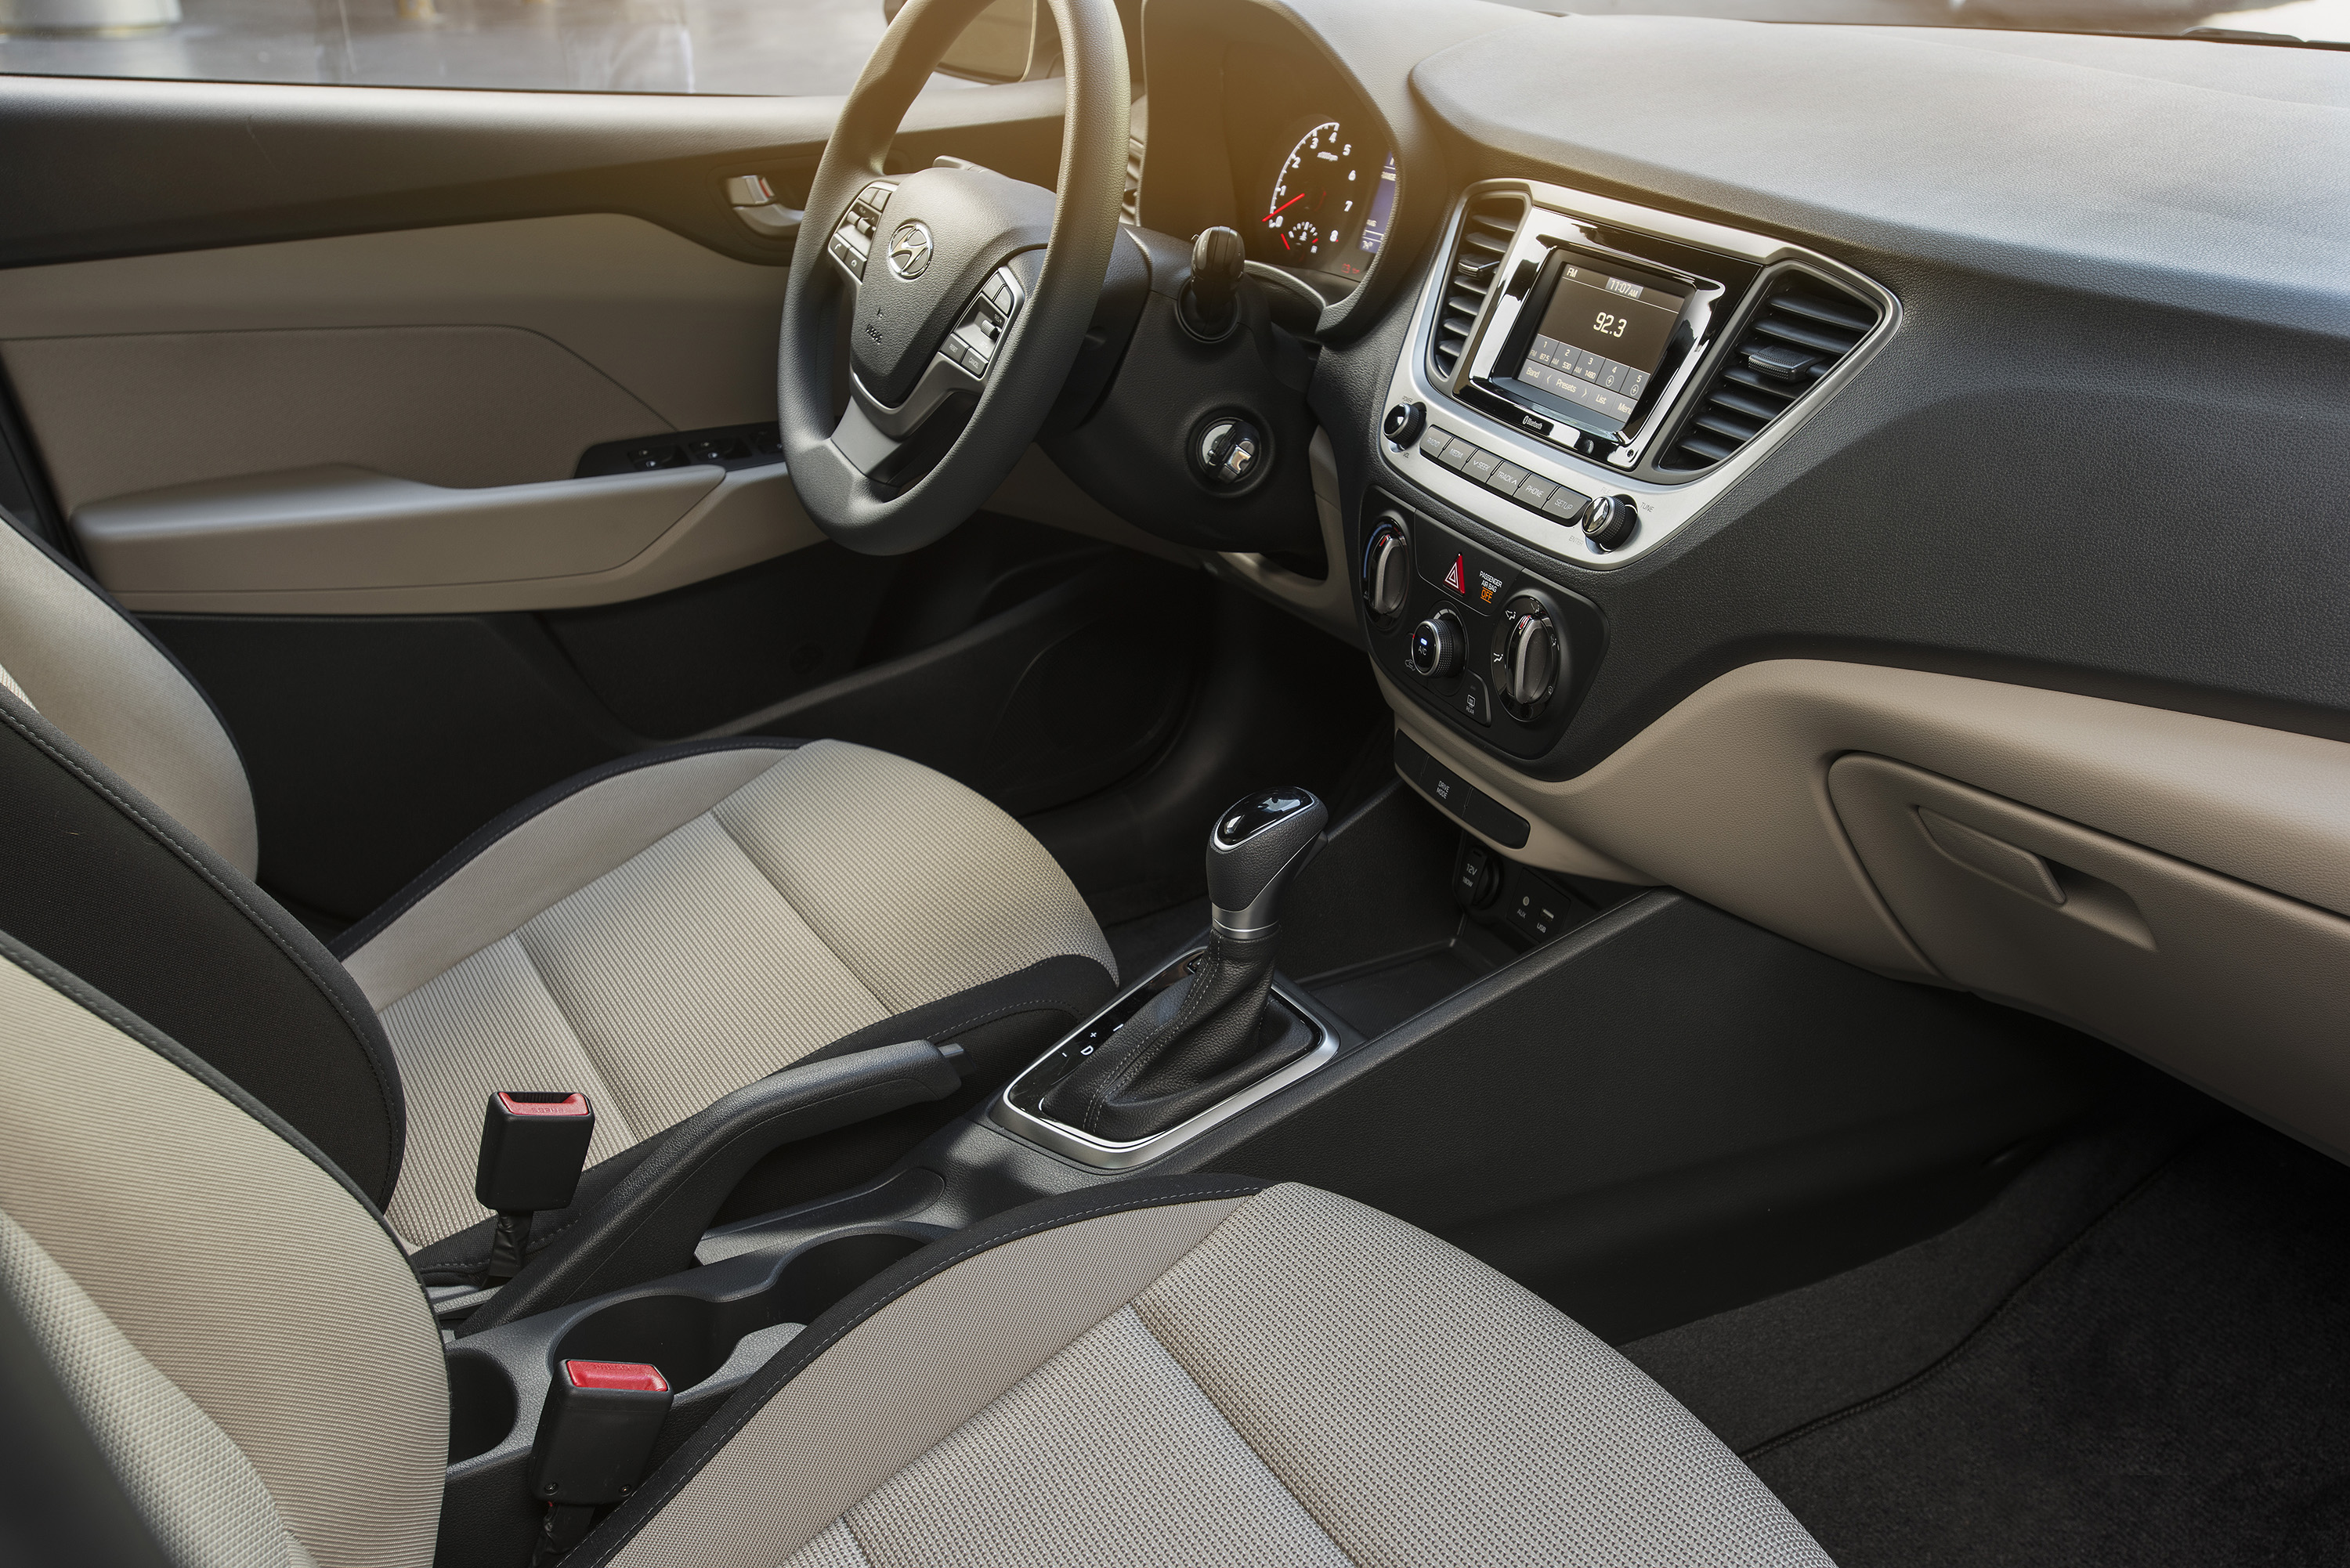 The Hyundai Accent interior is barebones and rather unpleasant, although controls are easy and long trips not spinetingling.